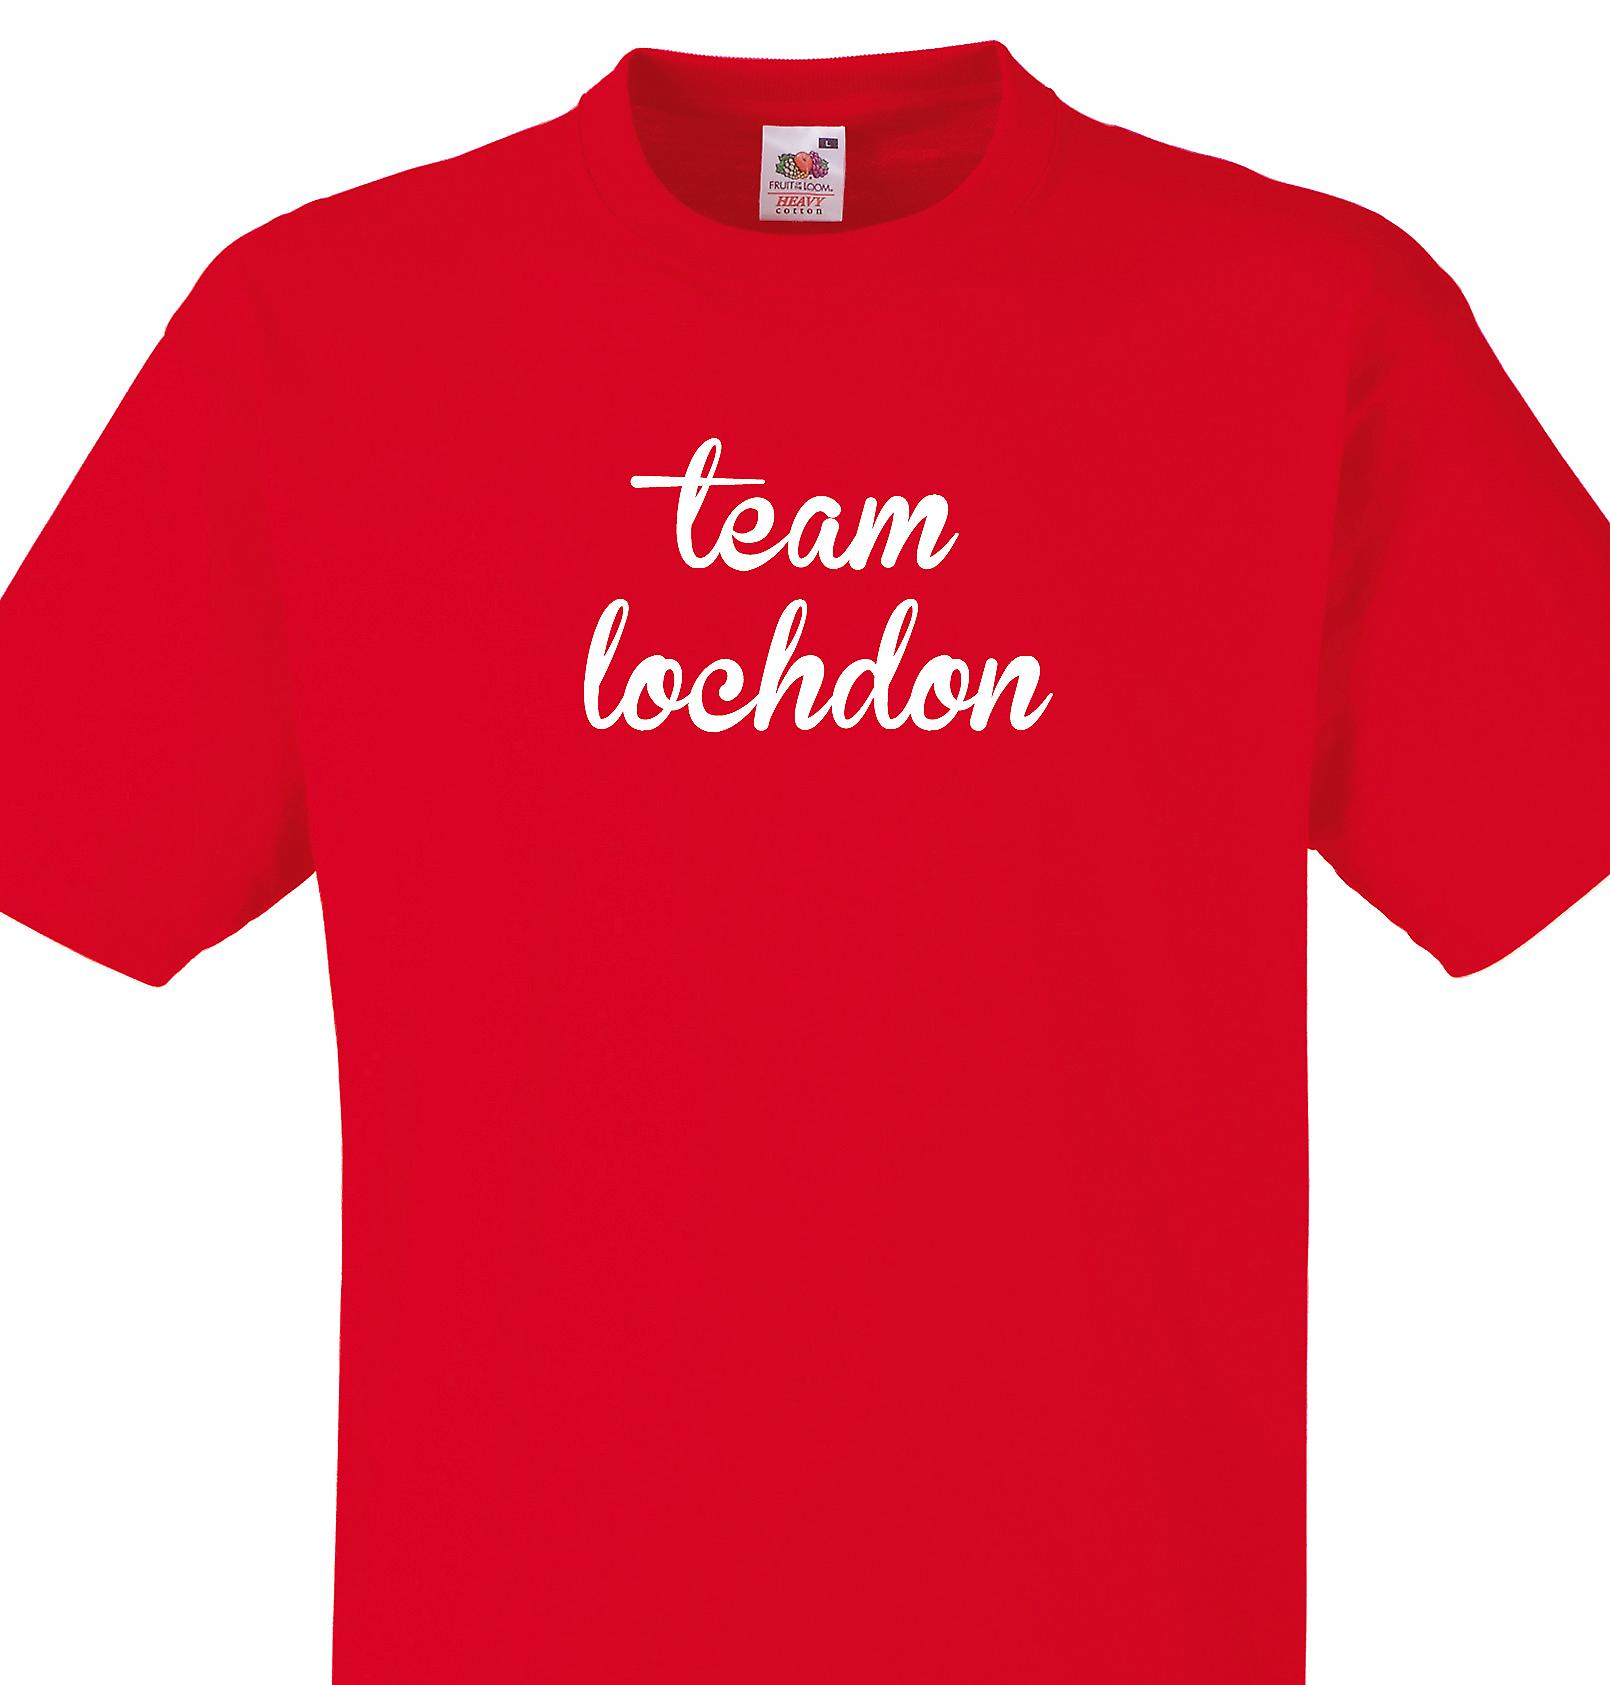 Team Lochdon Red T shirt